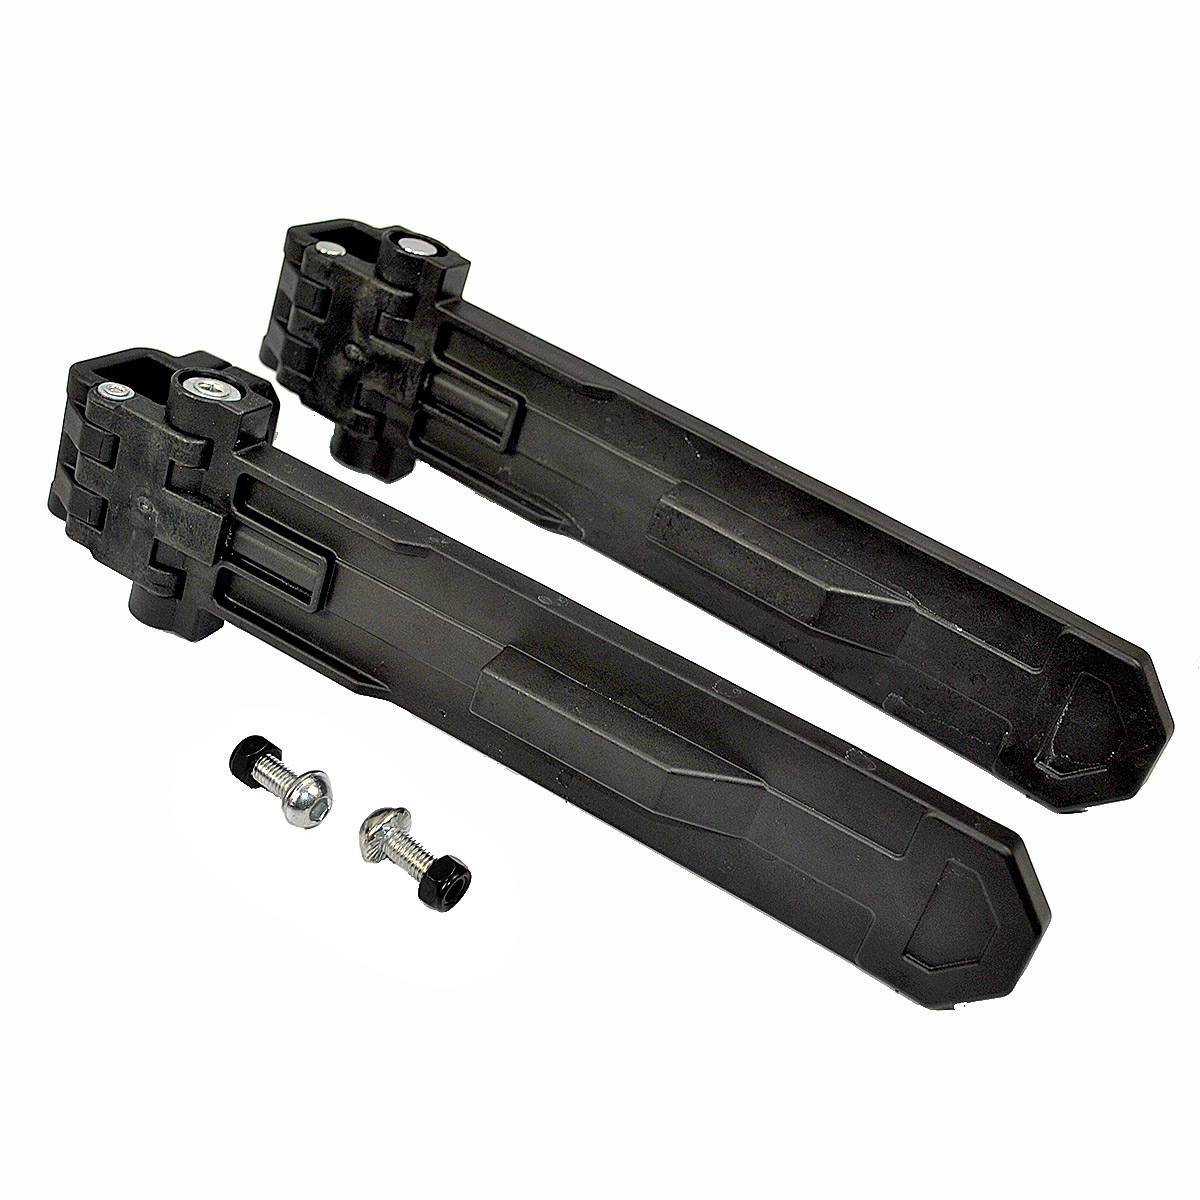 DEWALT DWSTO8212 1-70-362 TOUGHSYSTEM ARMS FOR TROLLEY (PAIR)